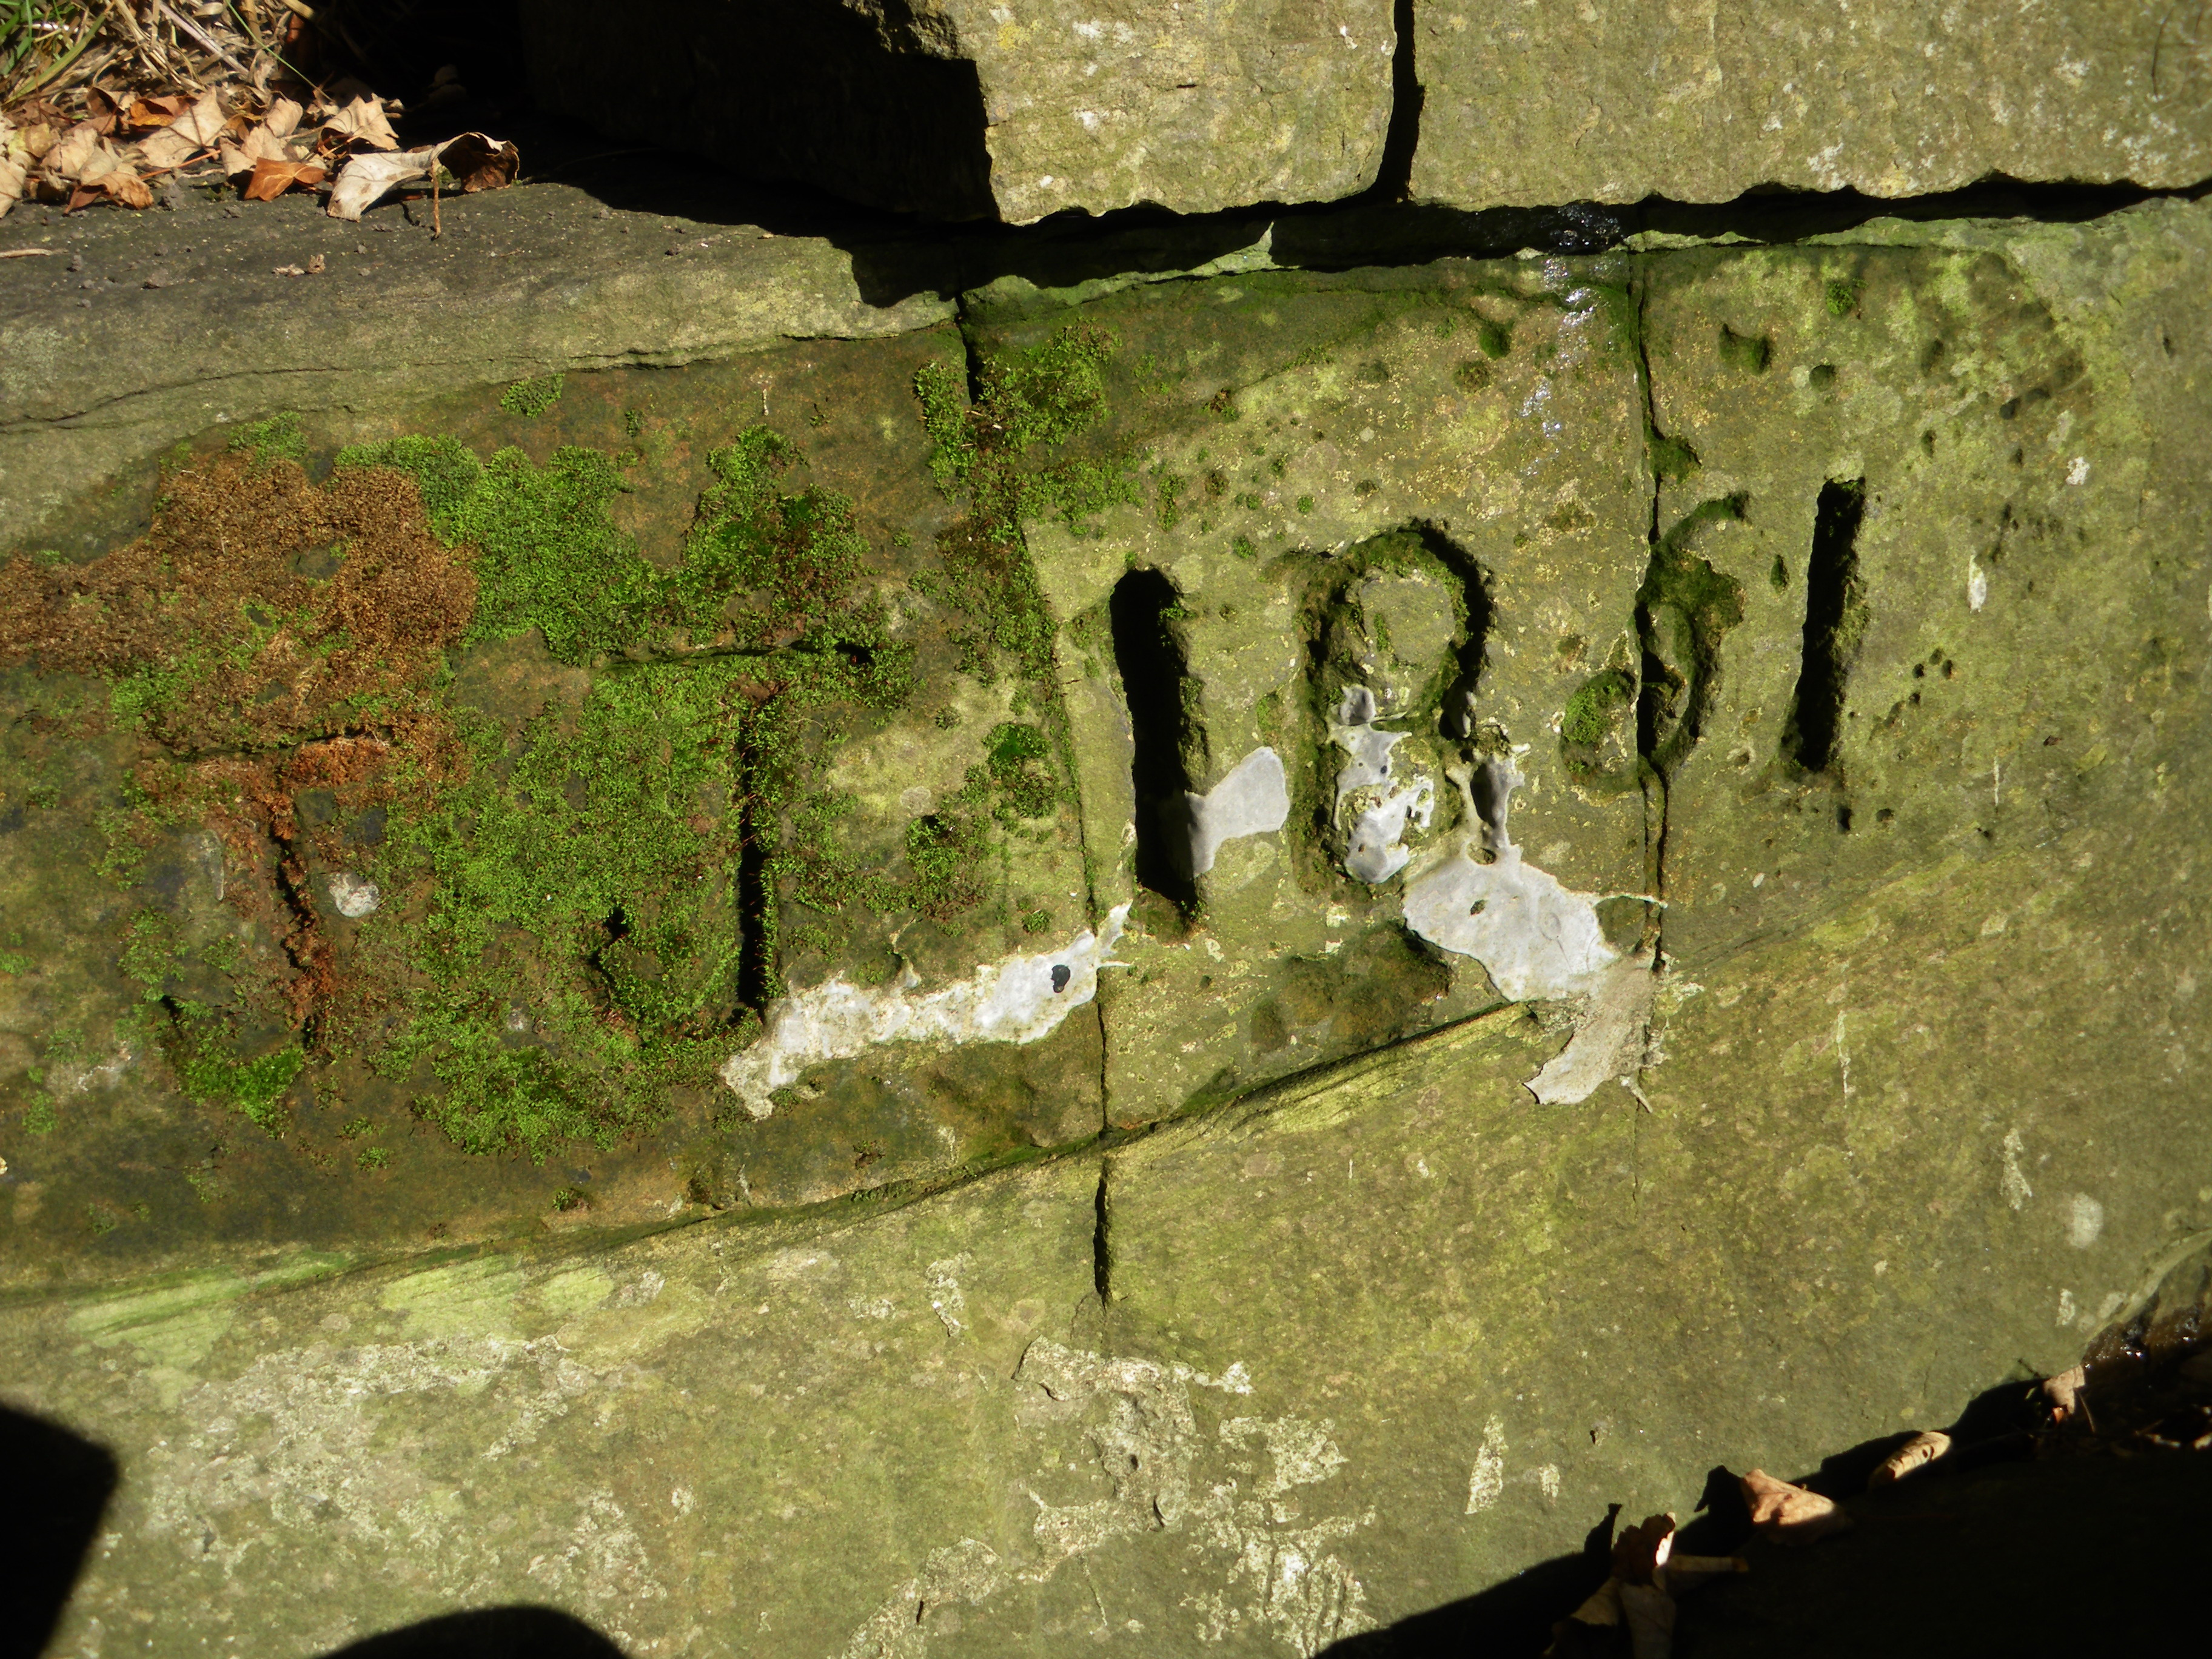 JJ 1861 (Jonathan Jowett) is carved on rocks below the Millennium Bridge. It marks where a sough driven from Eaves Knoll Colliery, above Meadow Street exits into the river Goyt. Its not hard to imagine JJ wanting to mark the completion of so long a shaft.